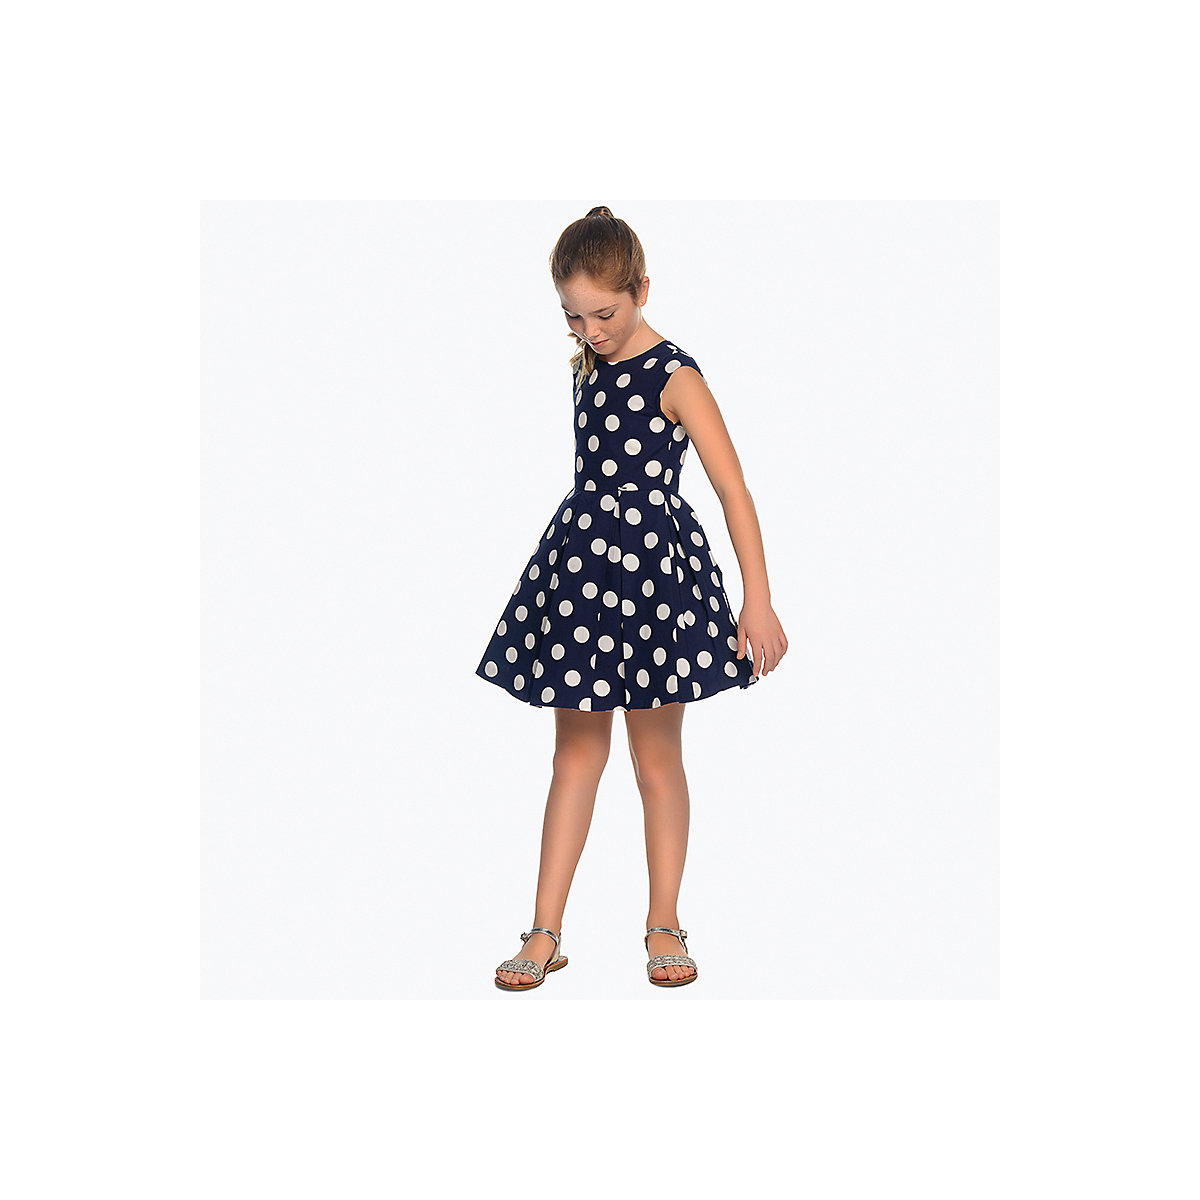 MAYORAL Dresses 10685019 Girl Children fitted pleated skirt Blue Cotton Casual Dot Knee-Length Sleeveless Sleeve navy velvet mini pleated skirt